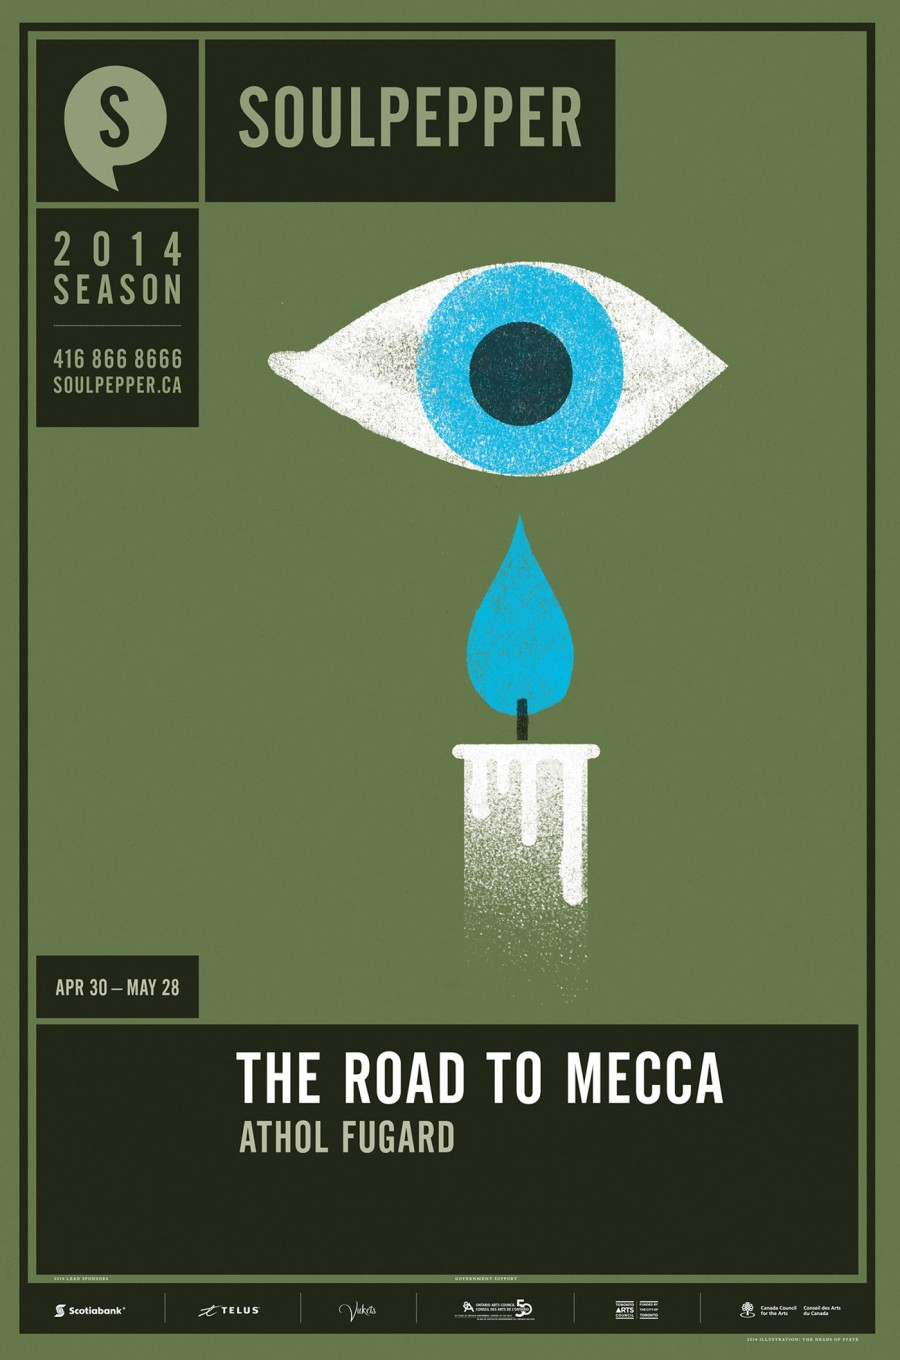 The Road To Mecca - Soulpepper Theatre - 2014 Season Poster Series - The Heads of State